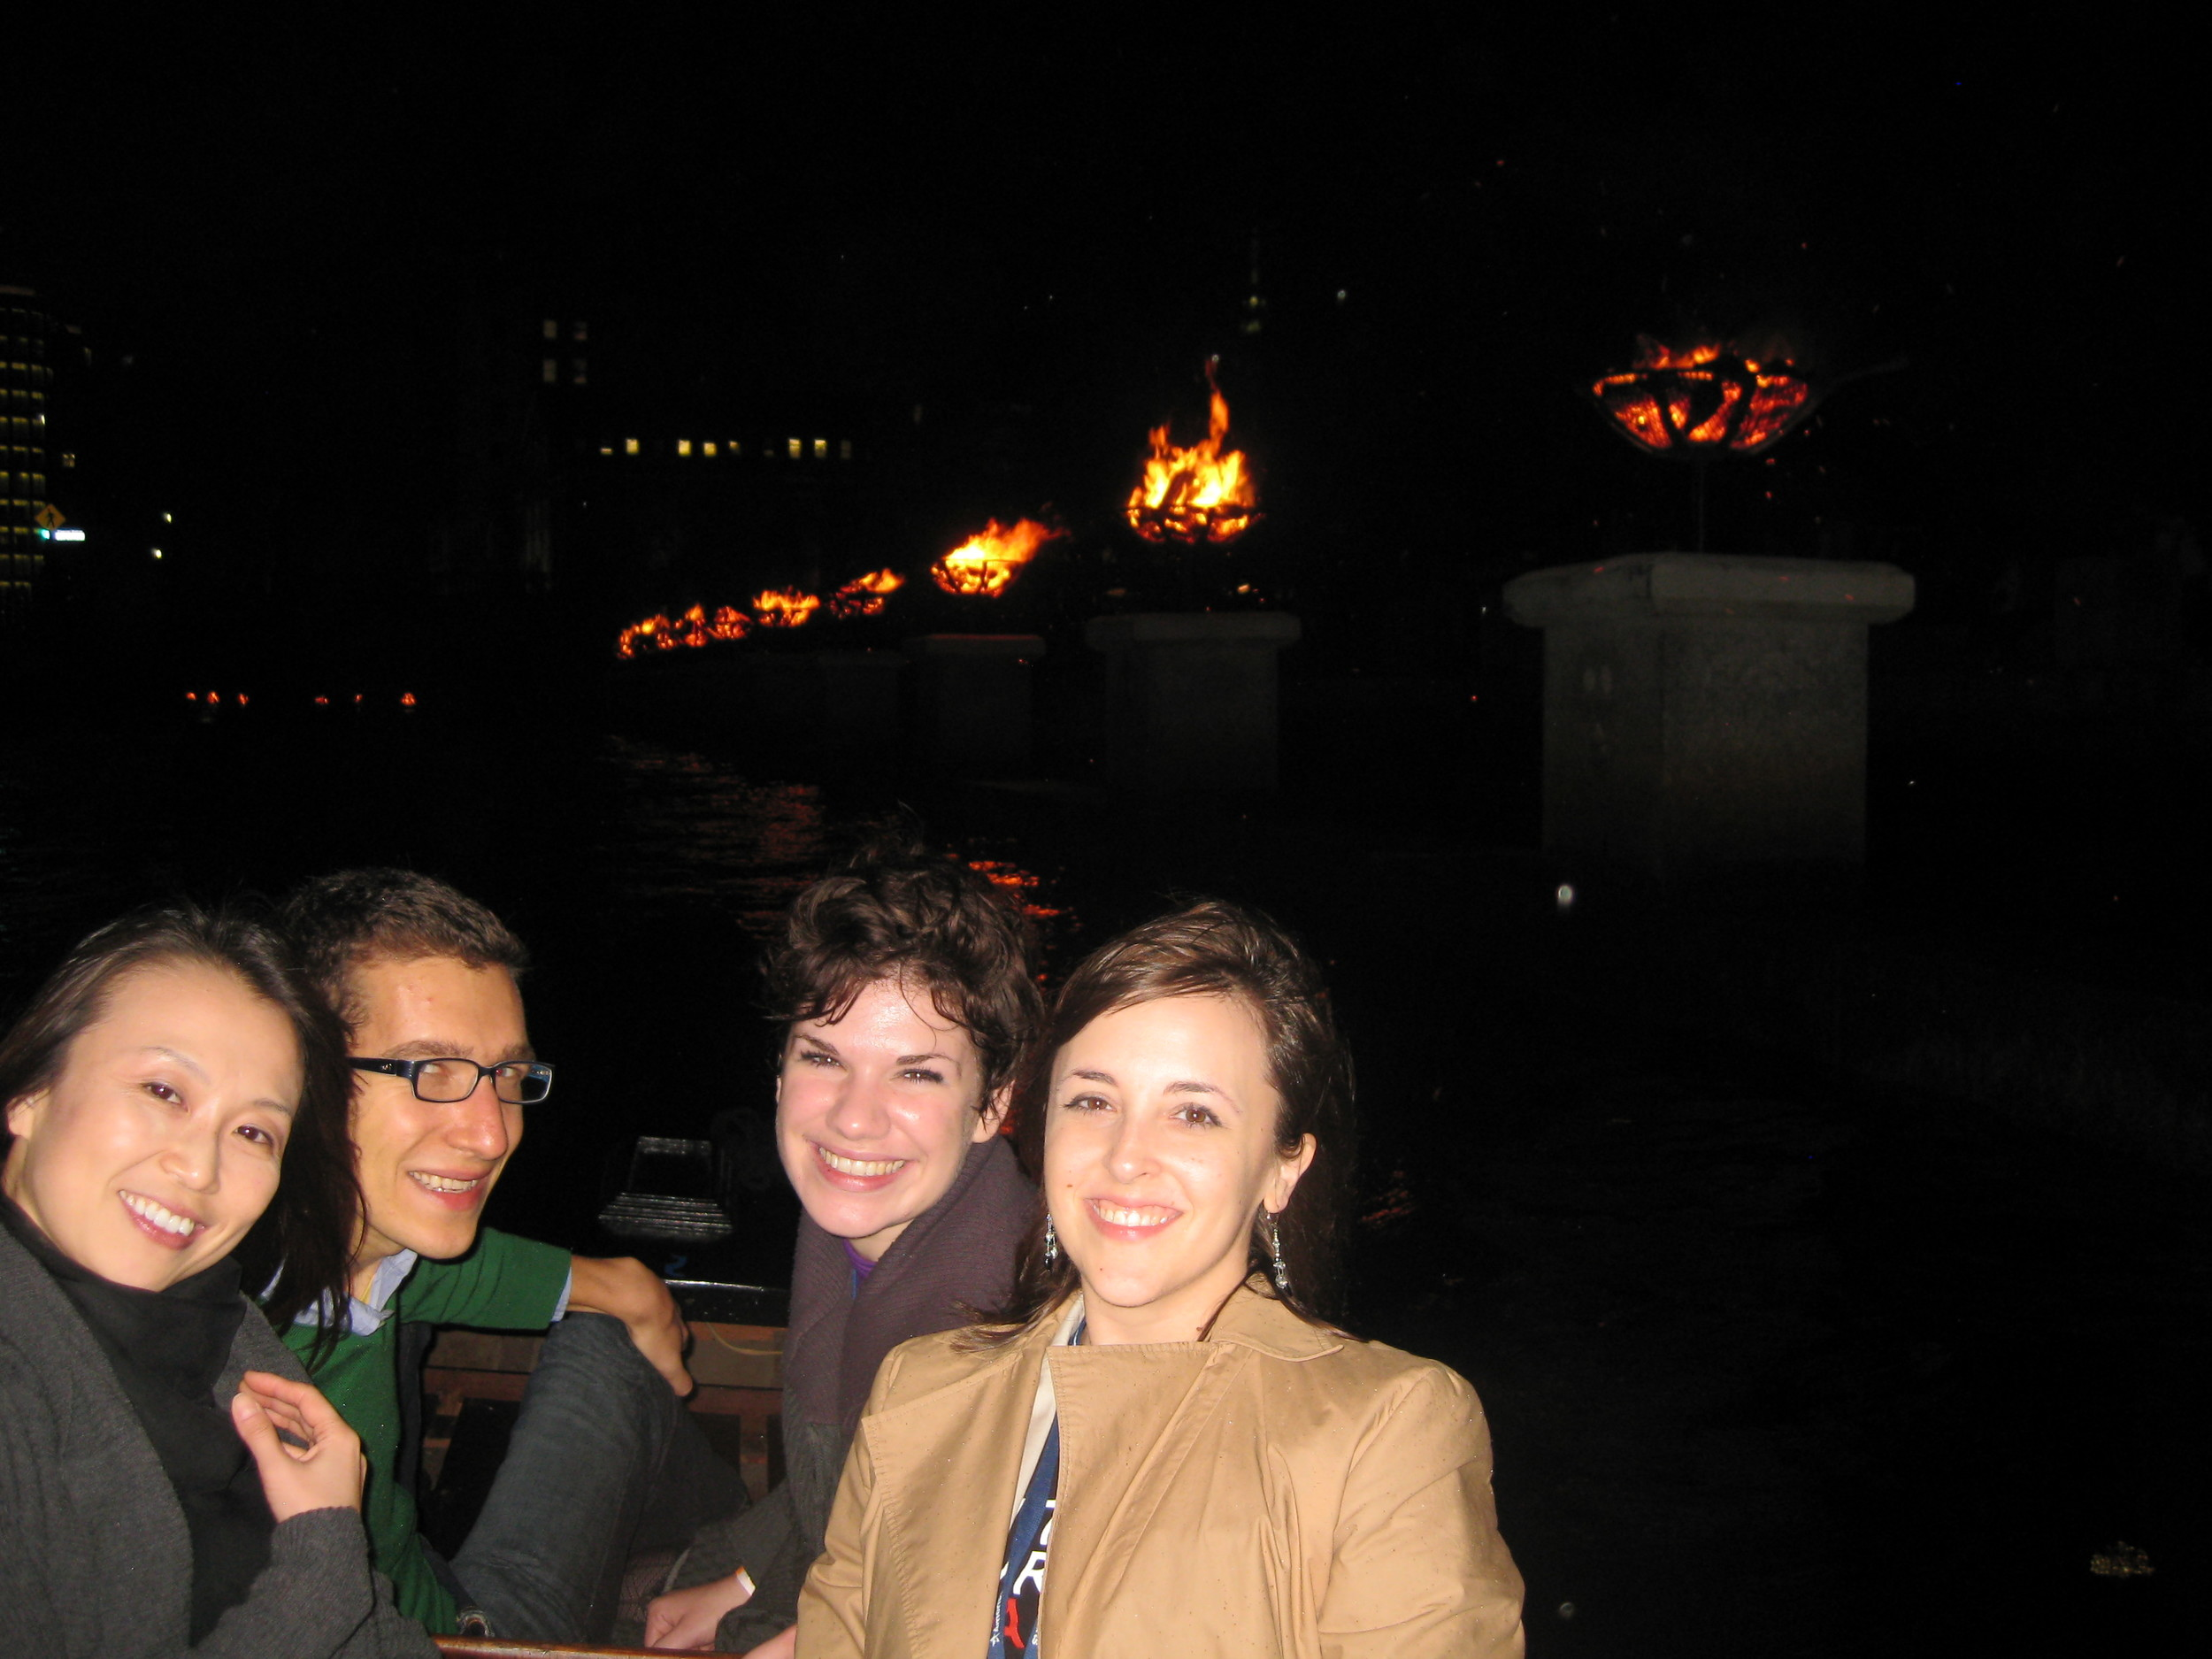 Pittsburgh contingent (L-R Haebin of CAMT, MAMs Justin and Corwin, and the Cultural Trust's Lauren) experience Water Fire